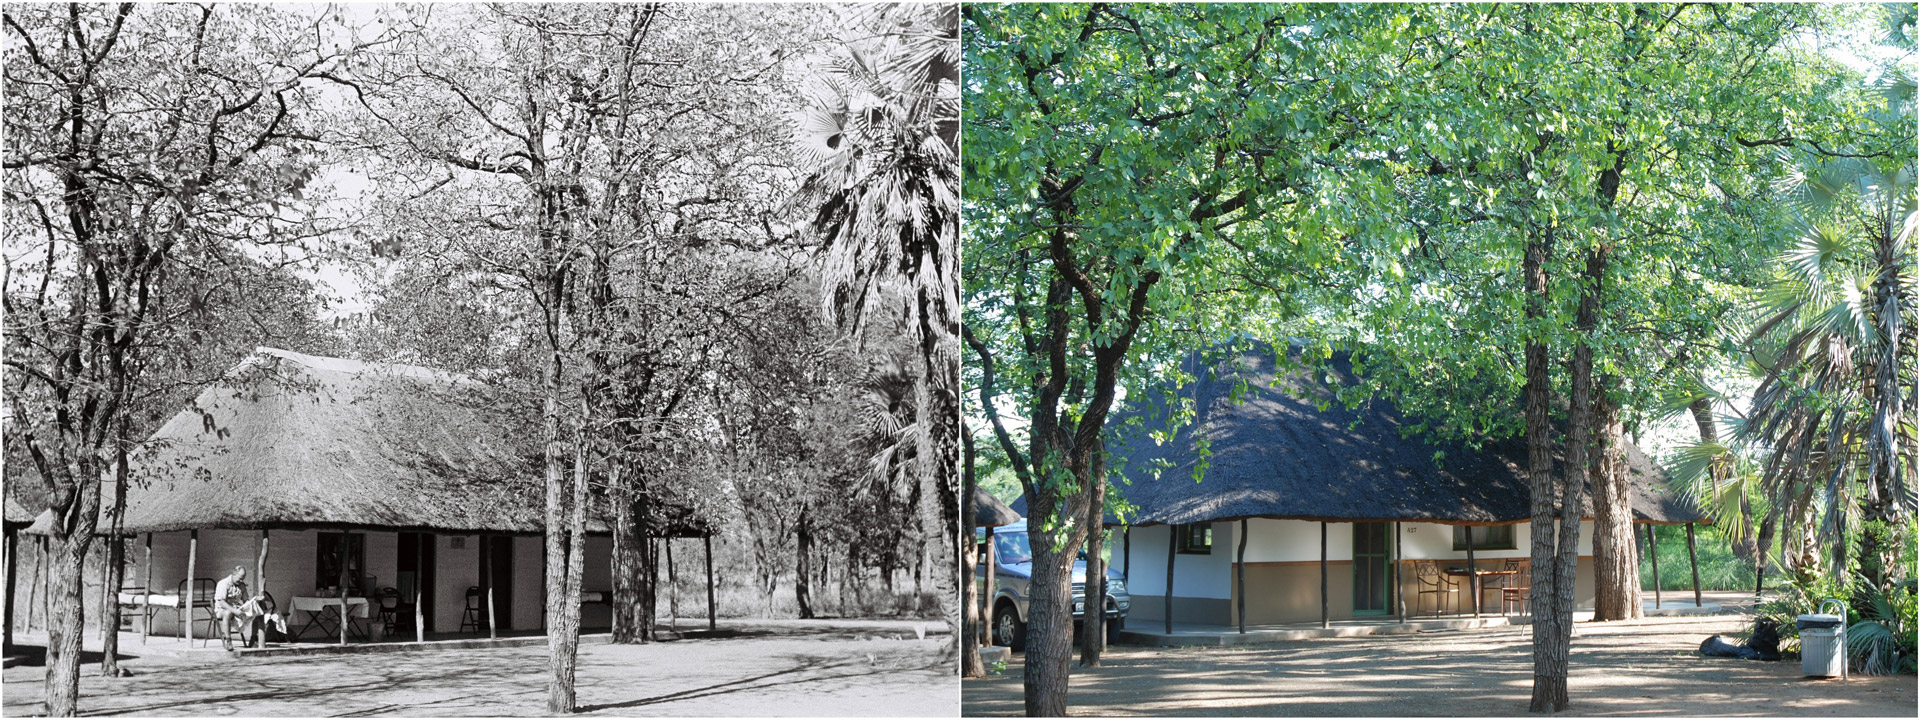 Then and now of Shingwedzi Camp 1956 and present